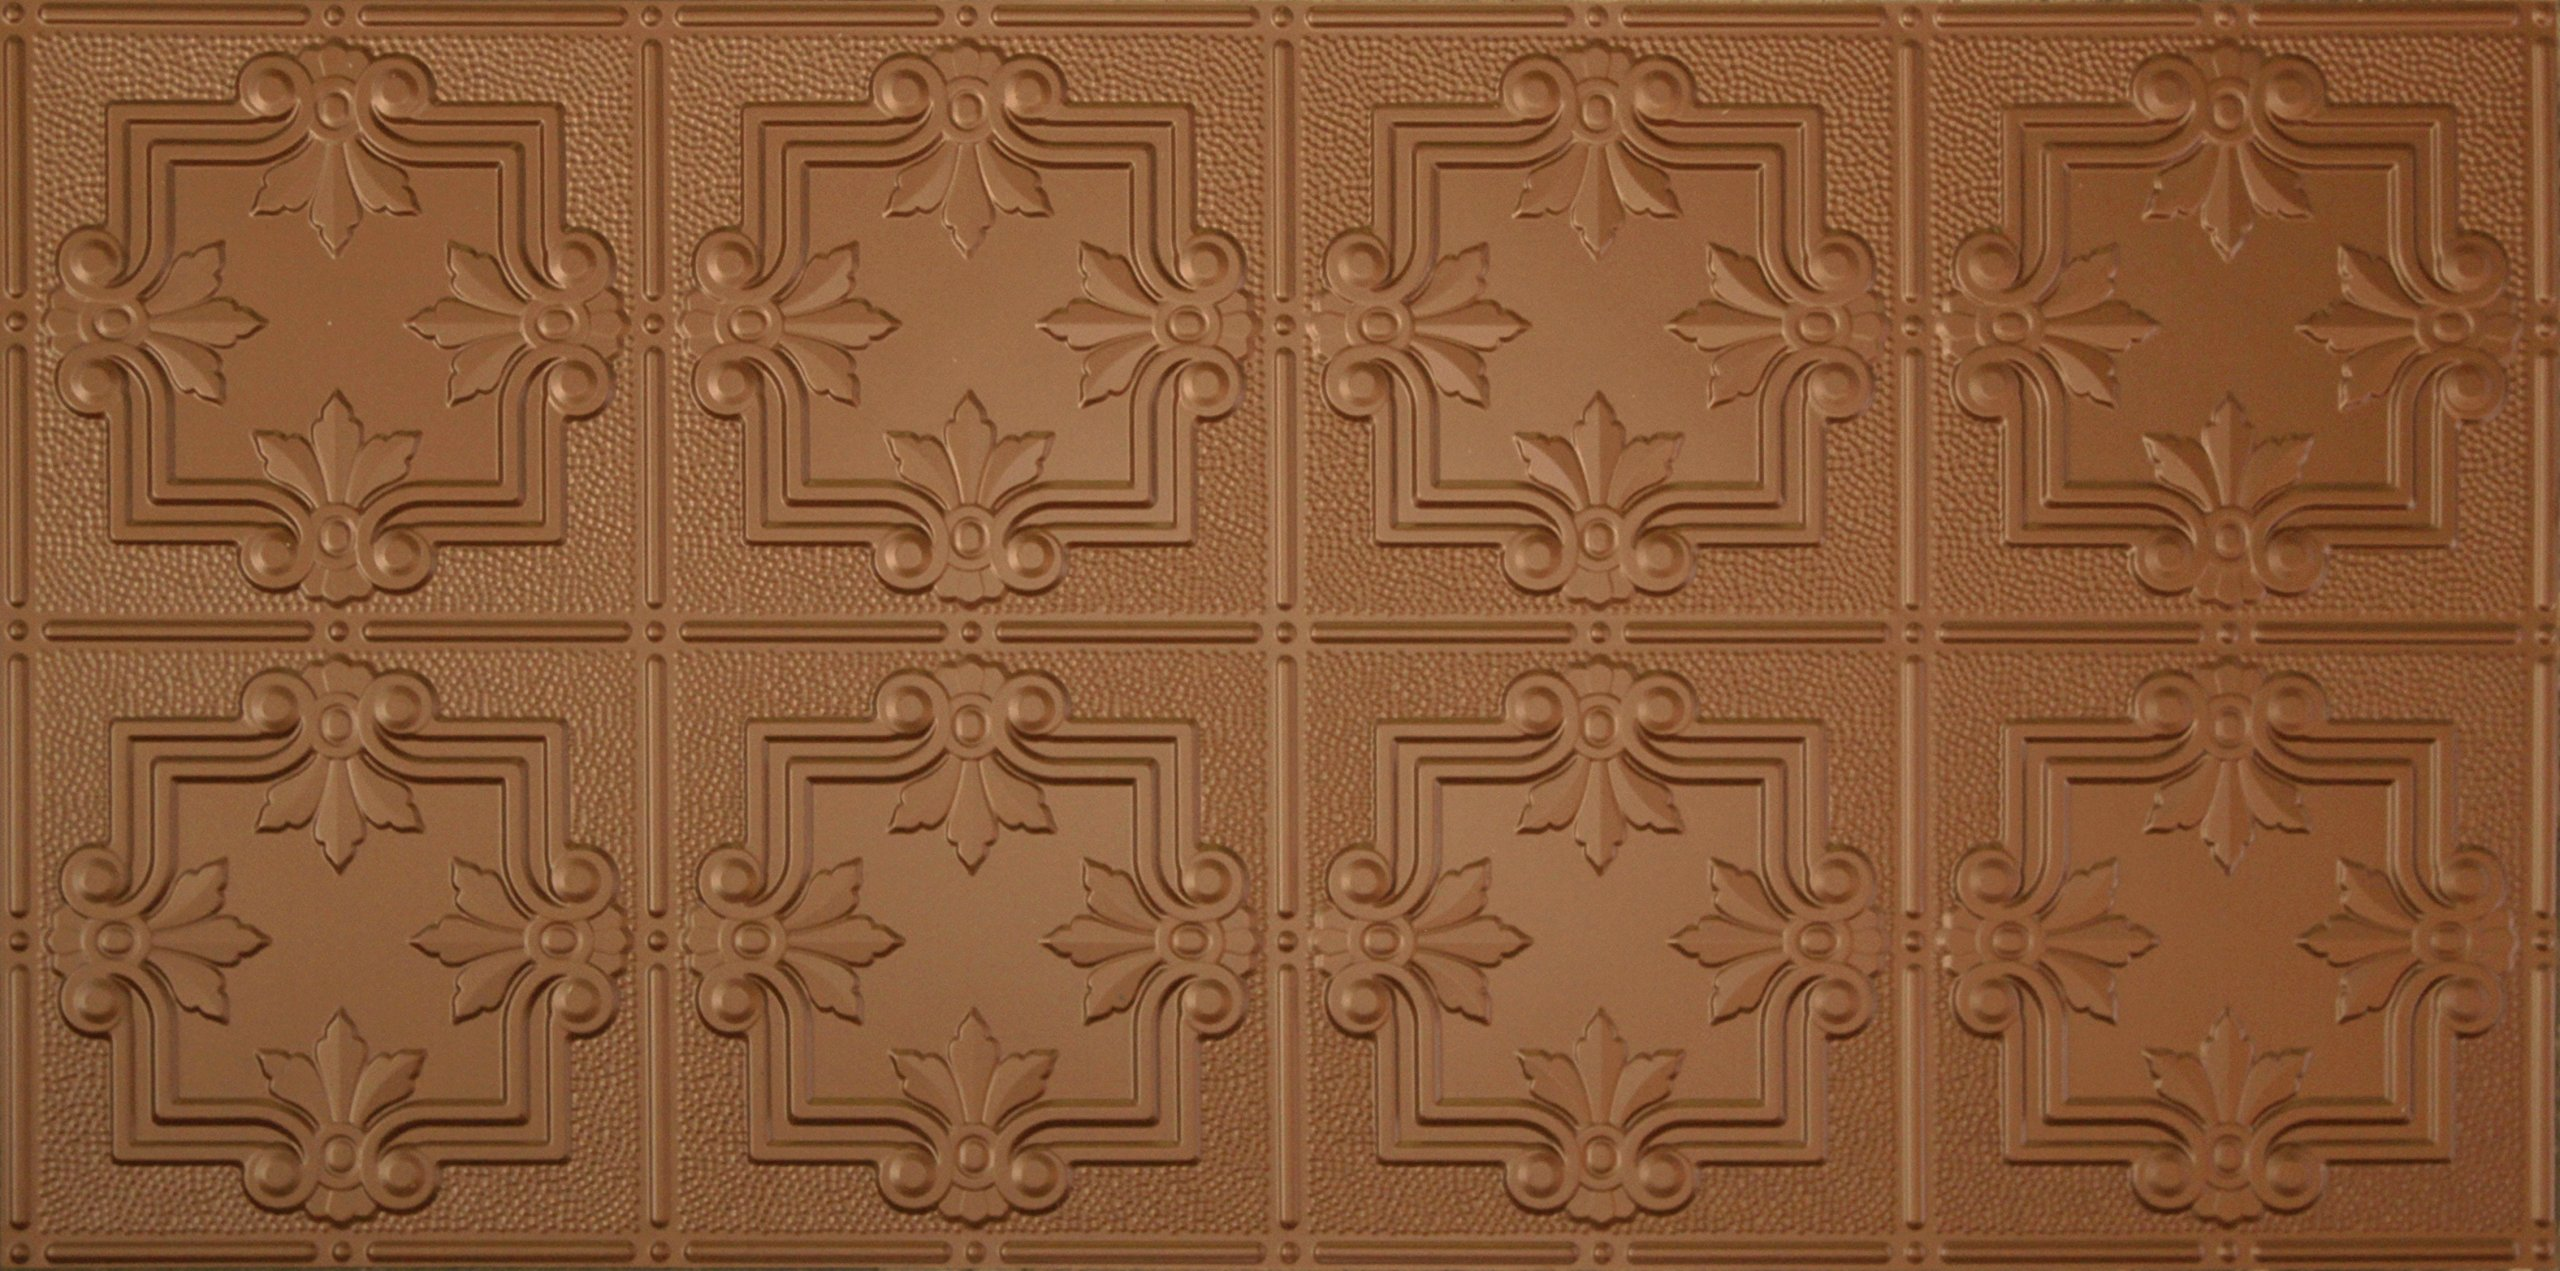 Global Specialty Products Pattern No.321 Tin Style Panel, 2 by 4-Feet, Aged Copper